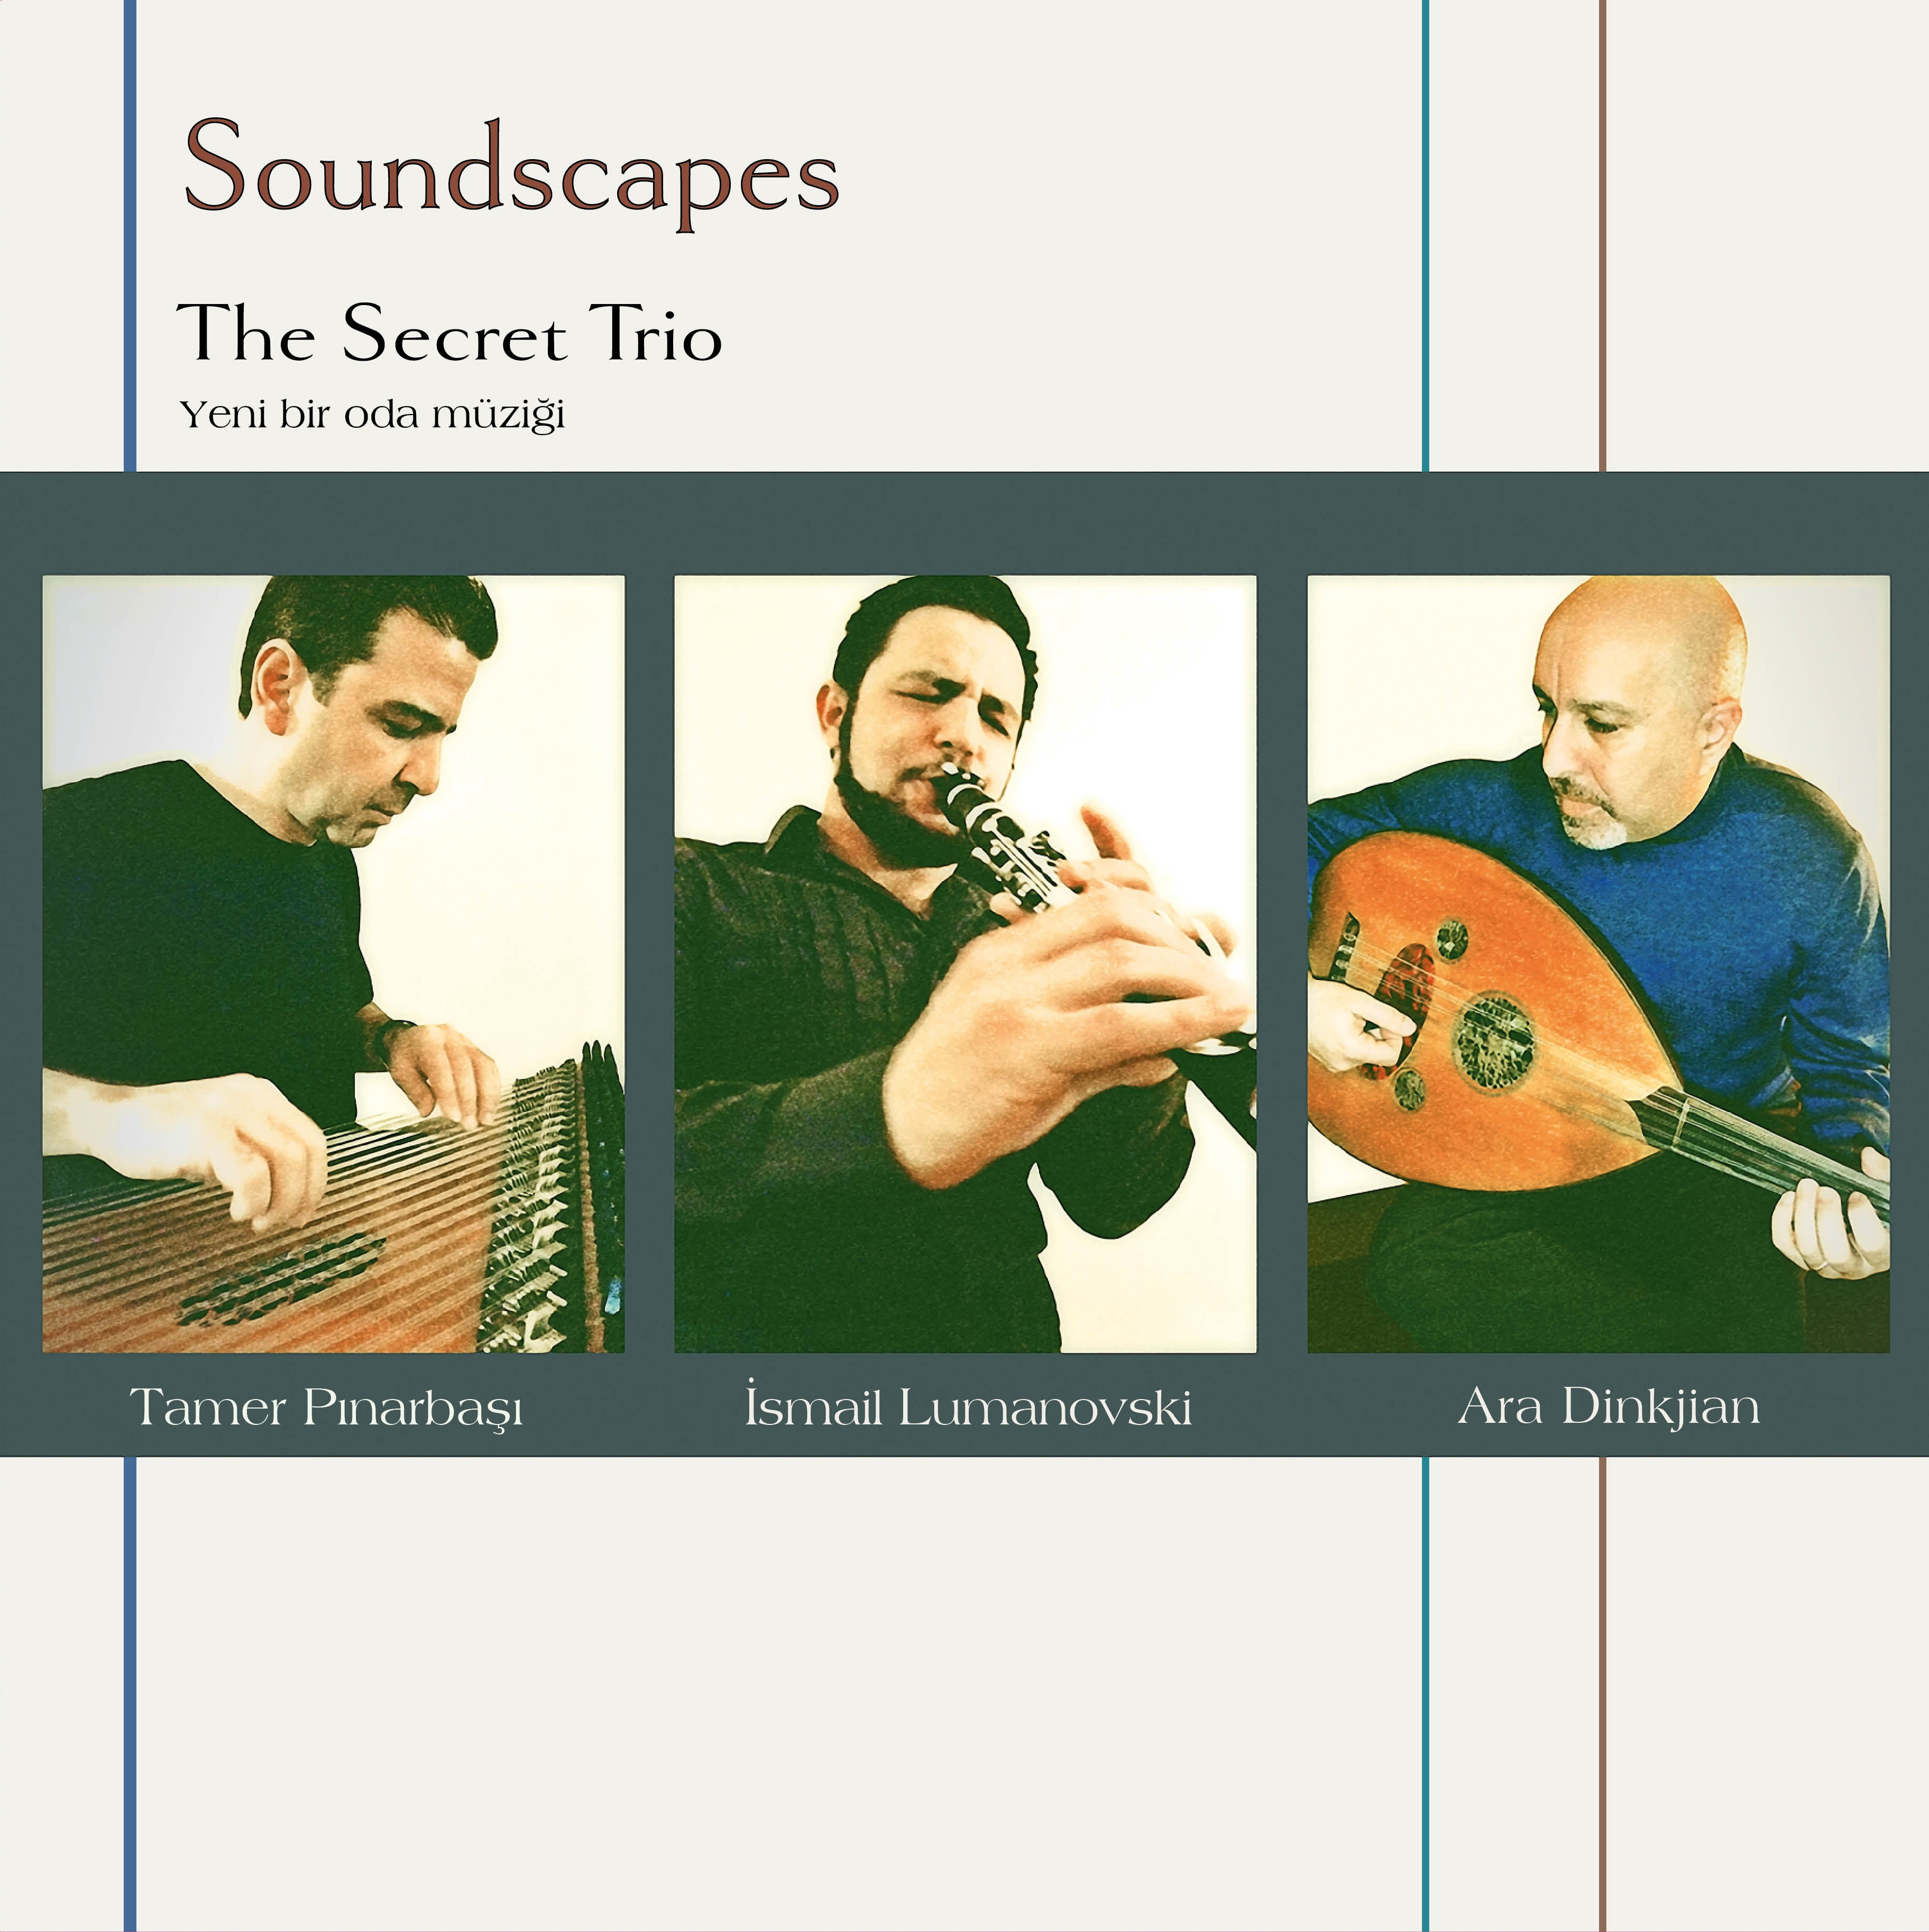 The Secret Trio Soundscapes